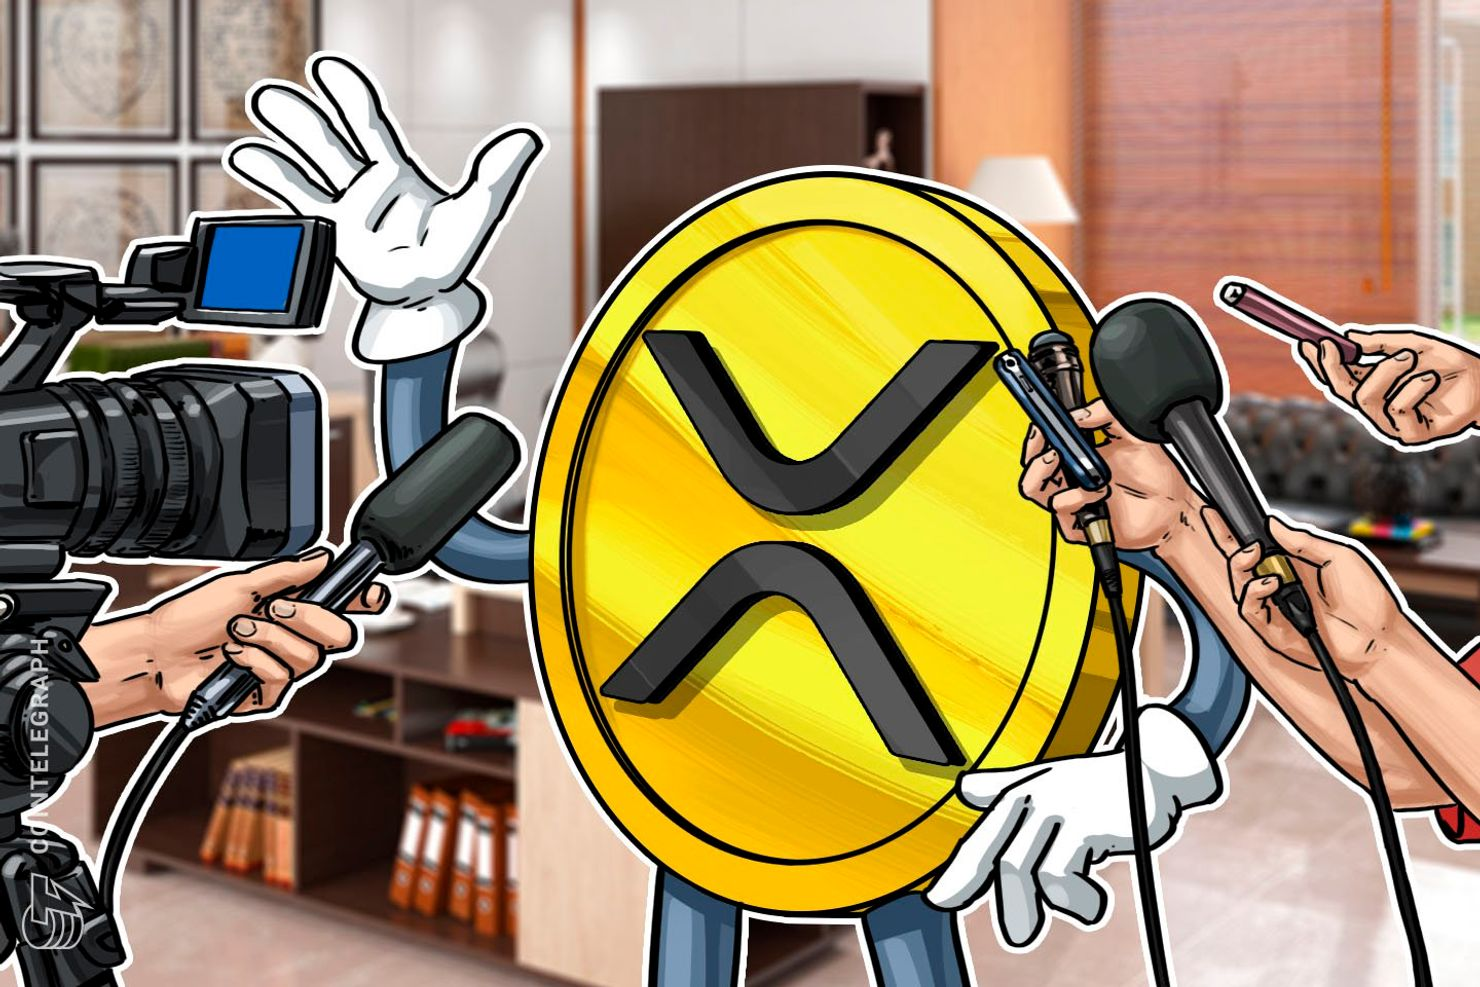 Cointelegraph predictions for the first 5 CBDCs of 2021-2022